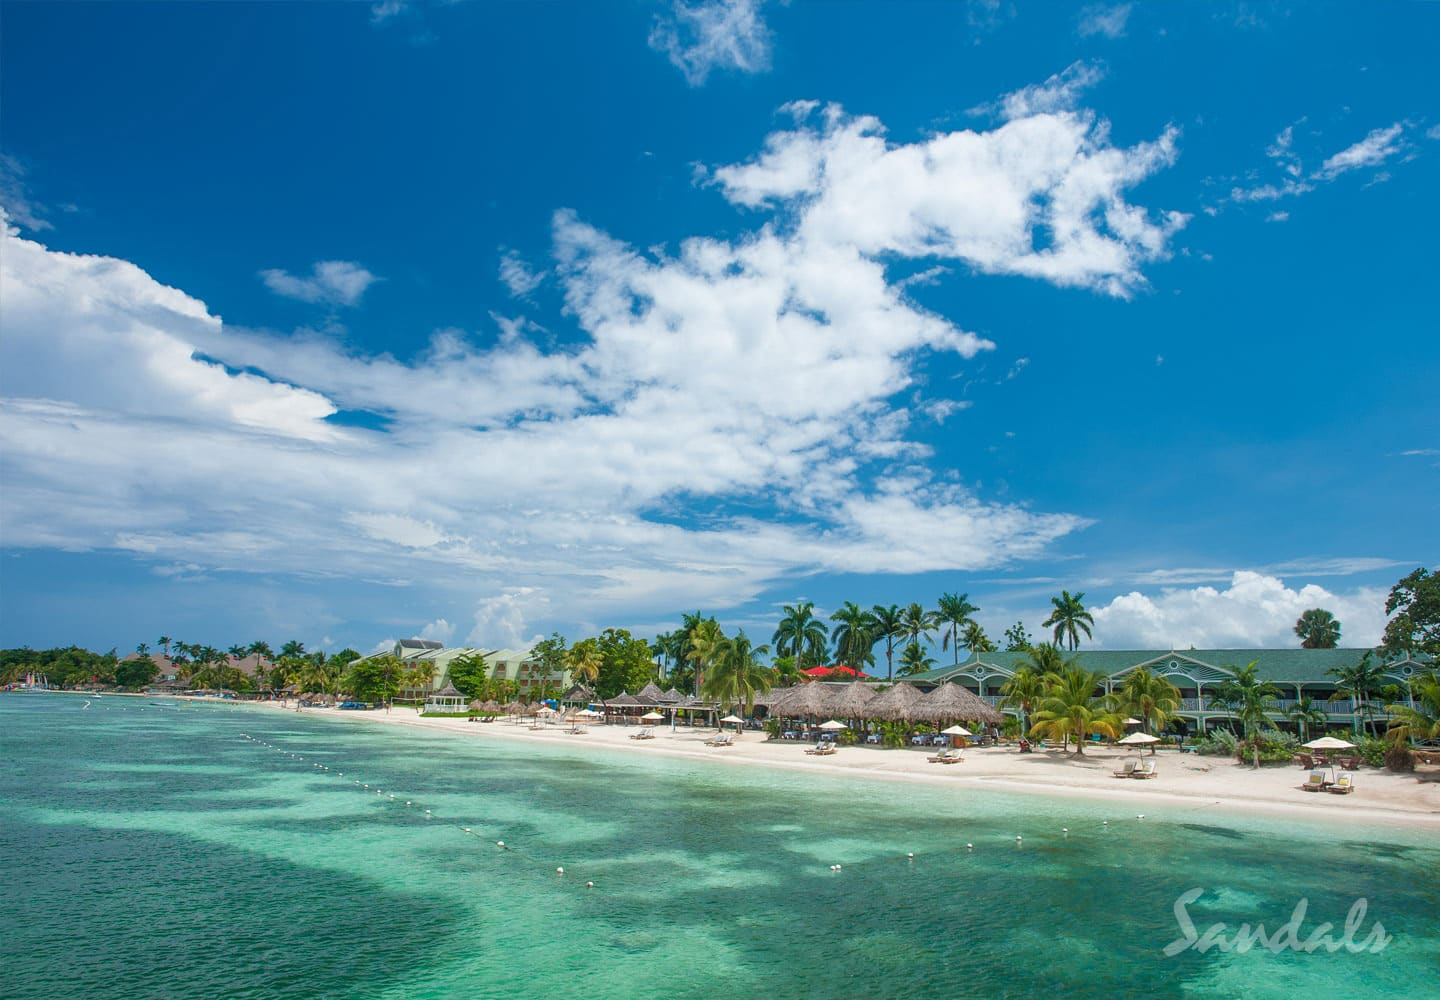 Perfect For All Inclusive Sandy Beach And Blue Ocean Water At The Sandals Negril Resort In Jamaica